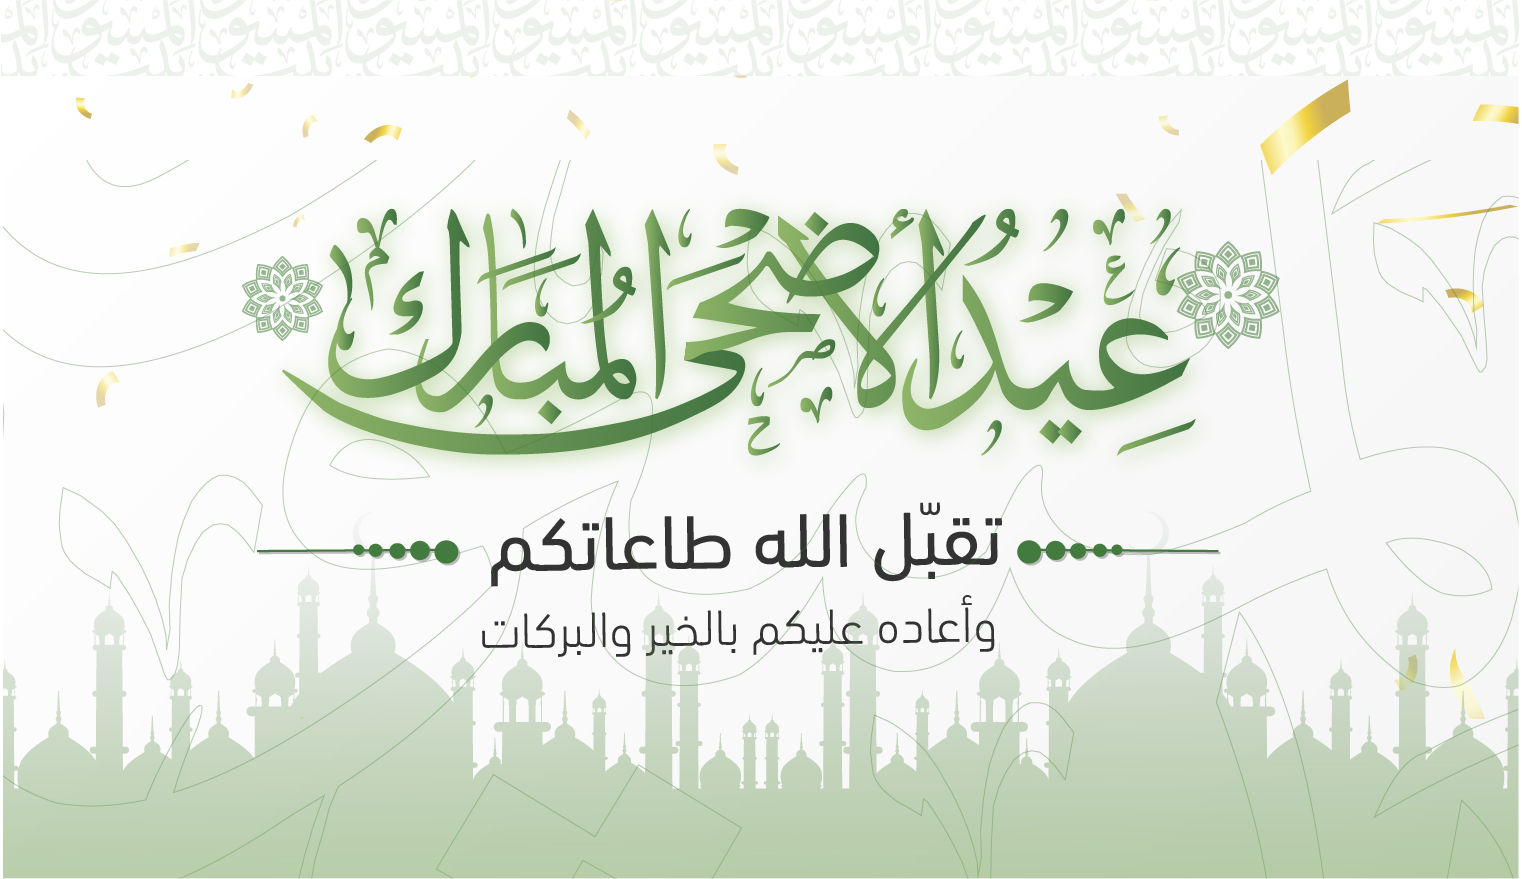 Bait Al Mashura wishes on the occassion of Eid Al Adha